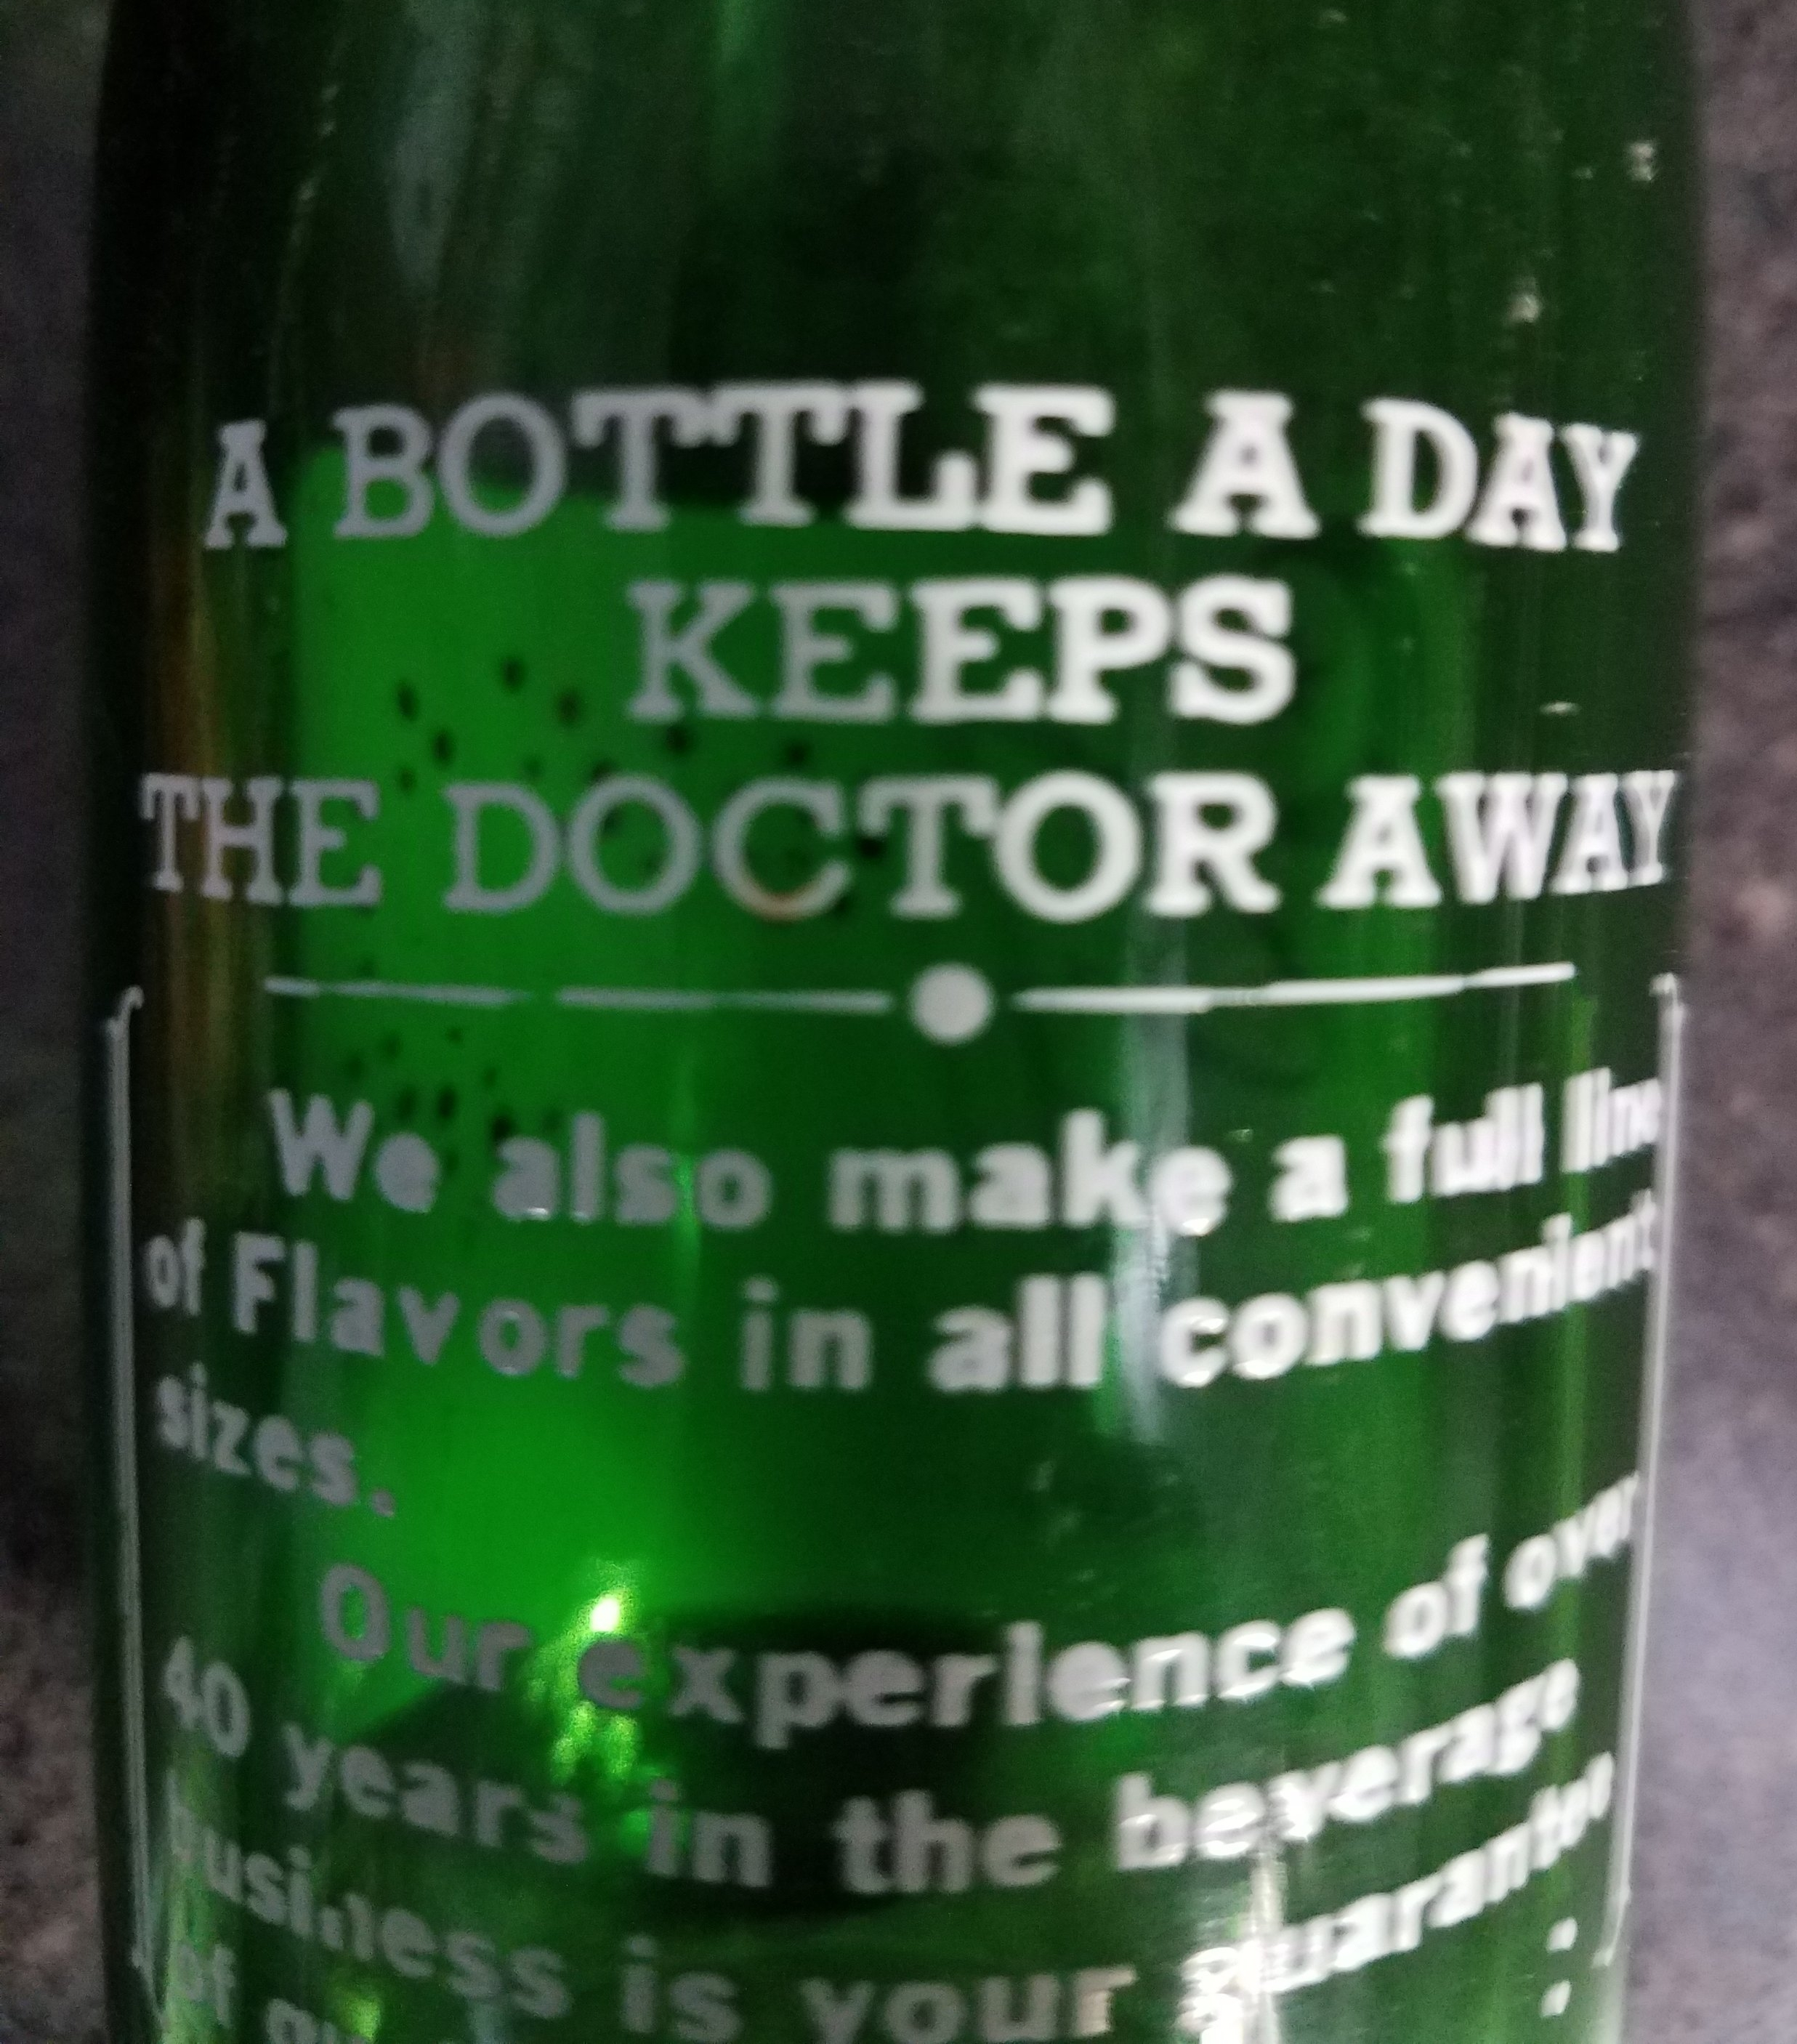 A Bottle a Day Keeps the Doctor Away